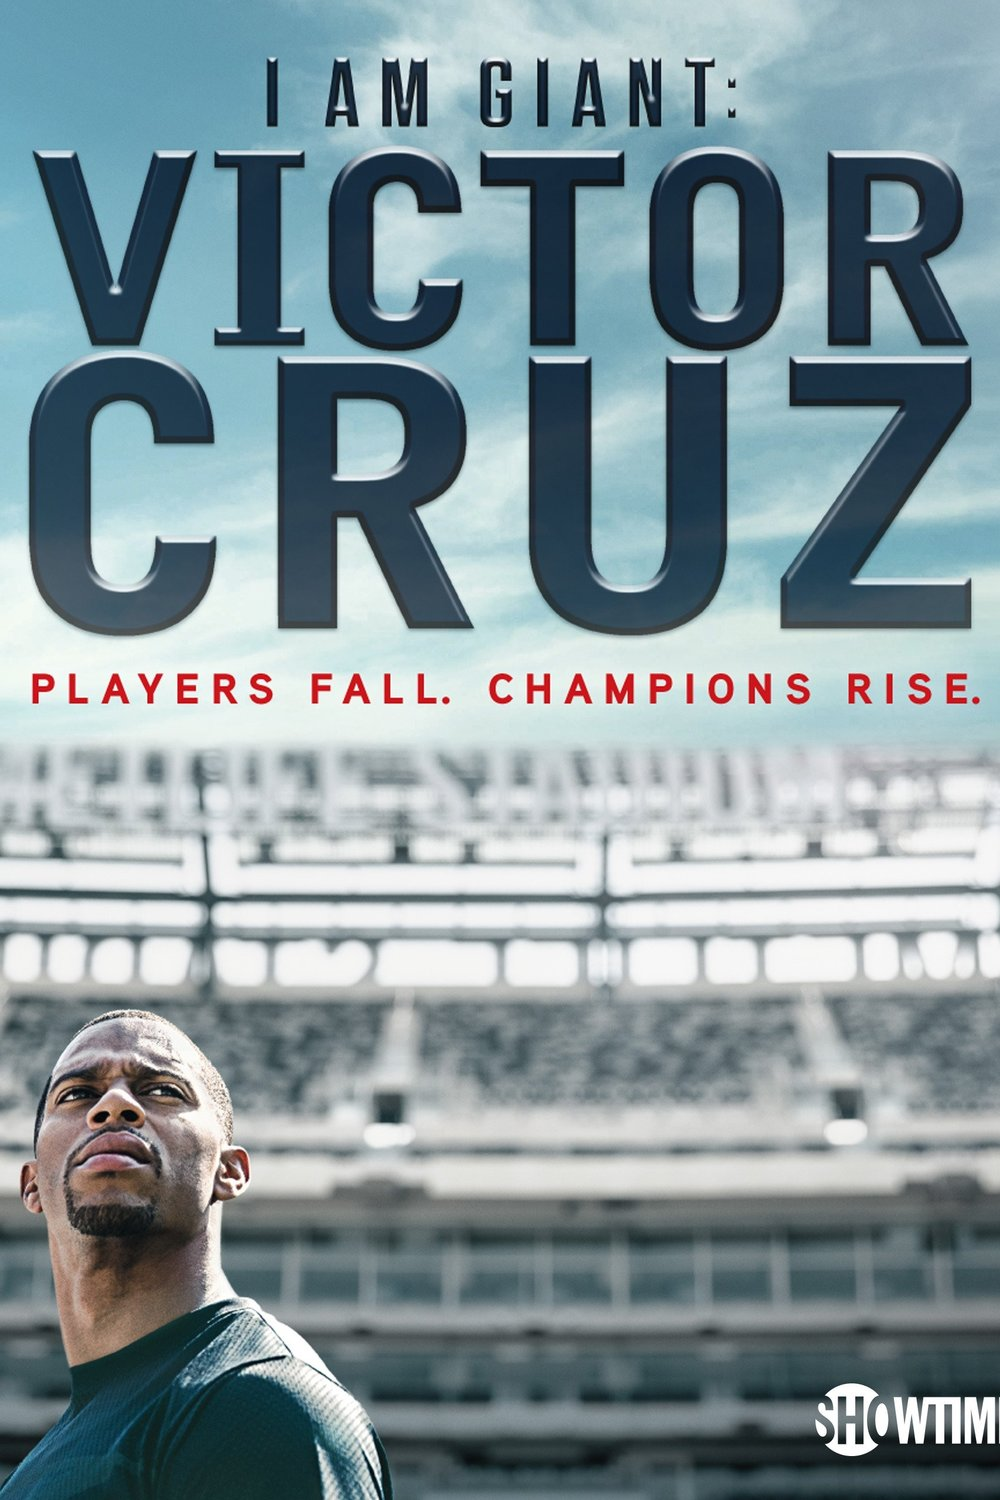 I am Giant: Victor cruz   2015